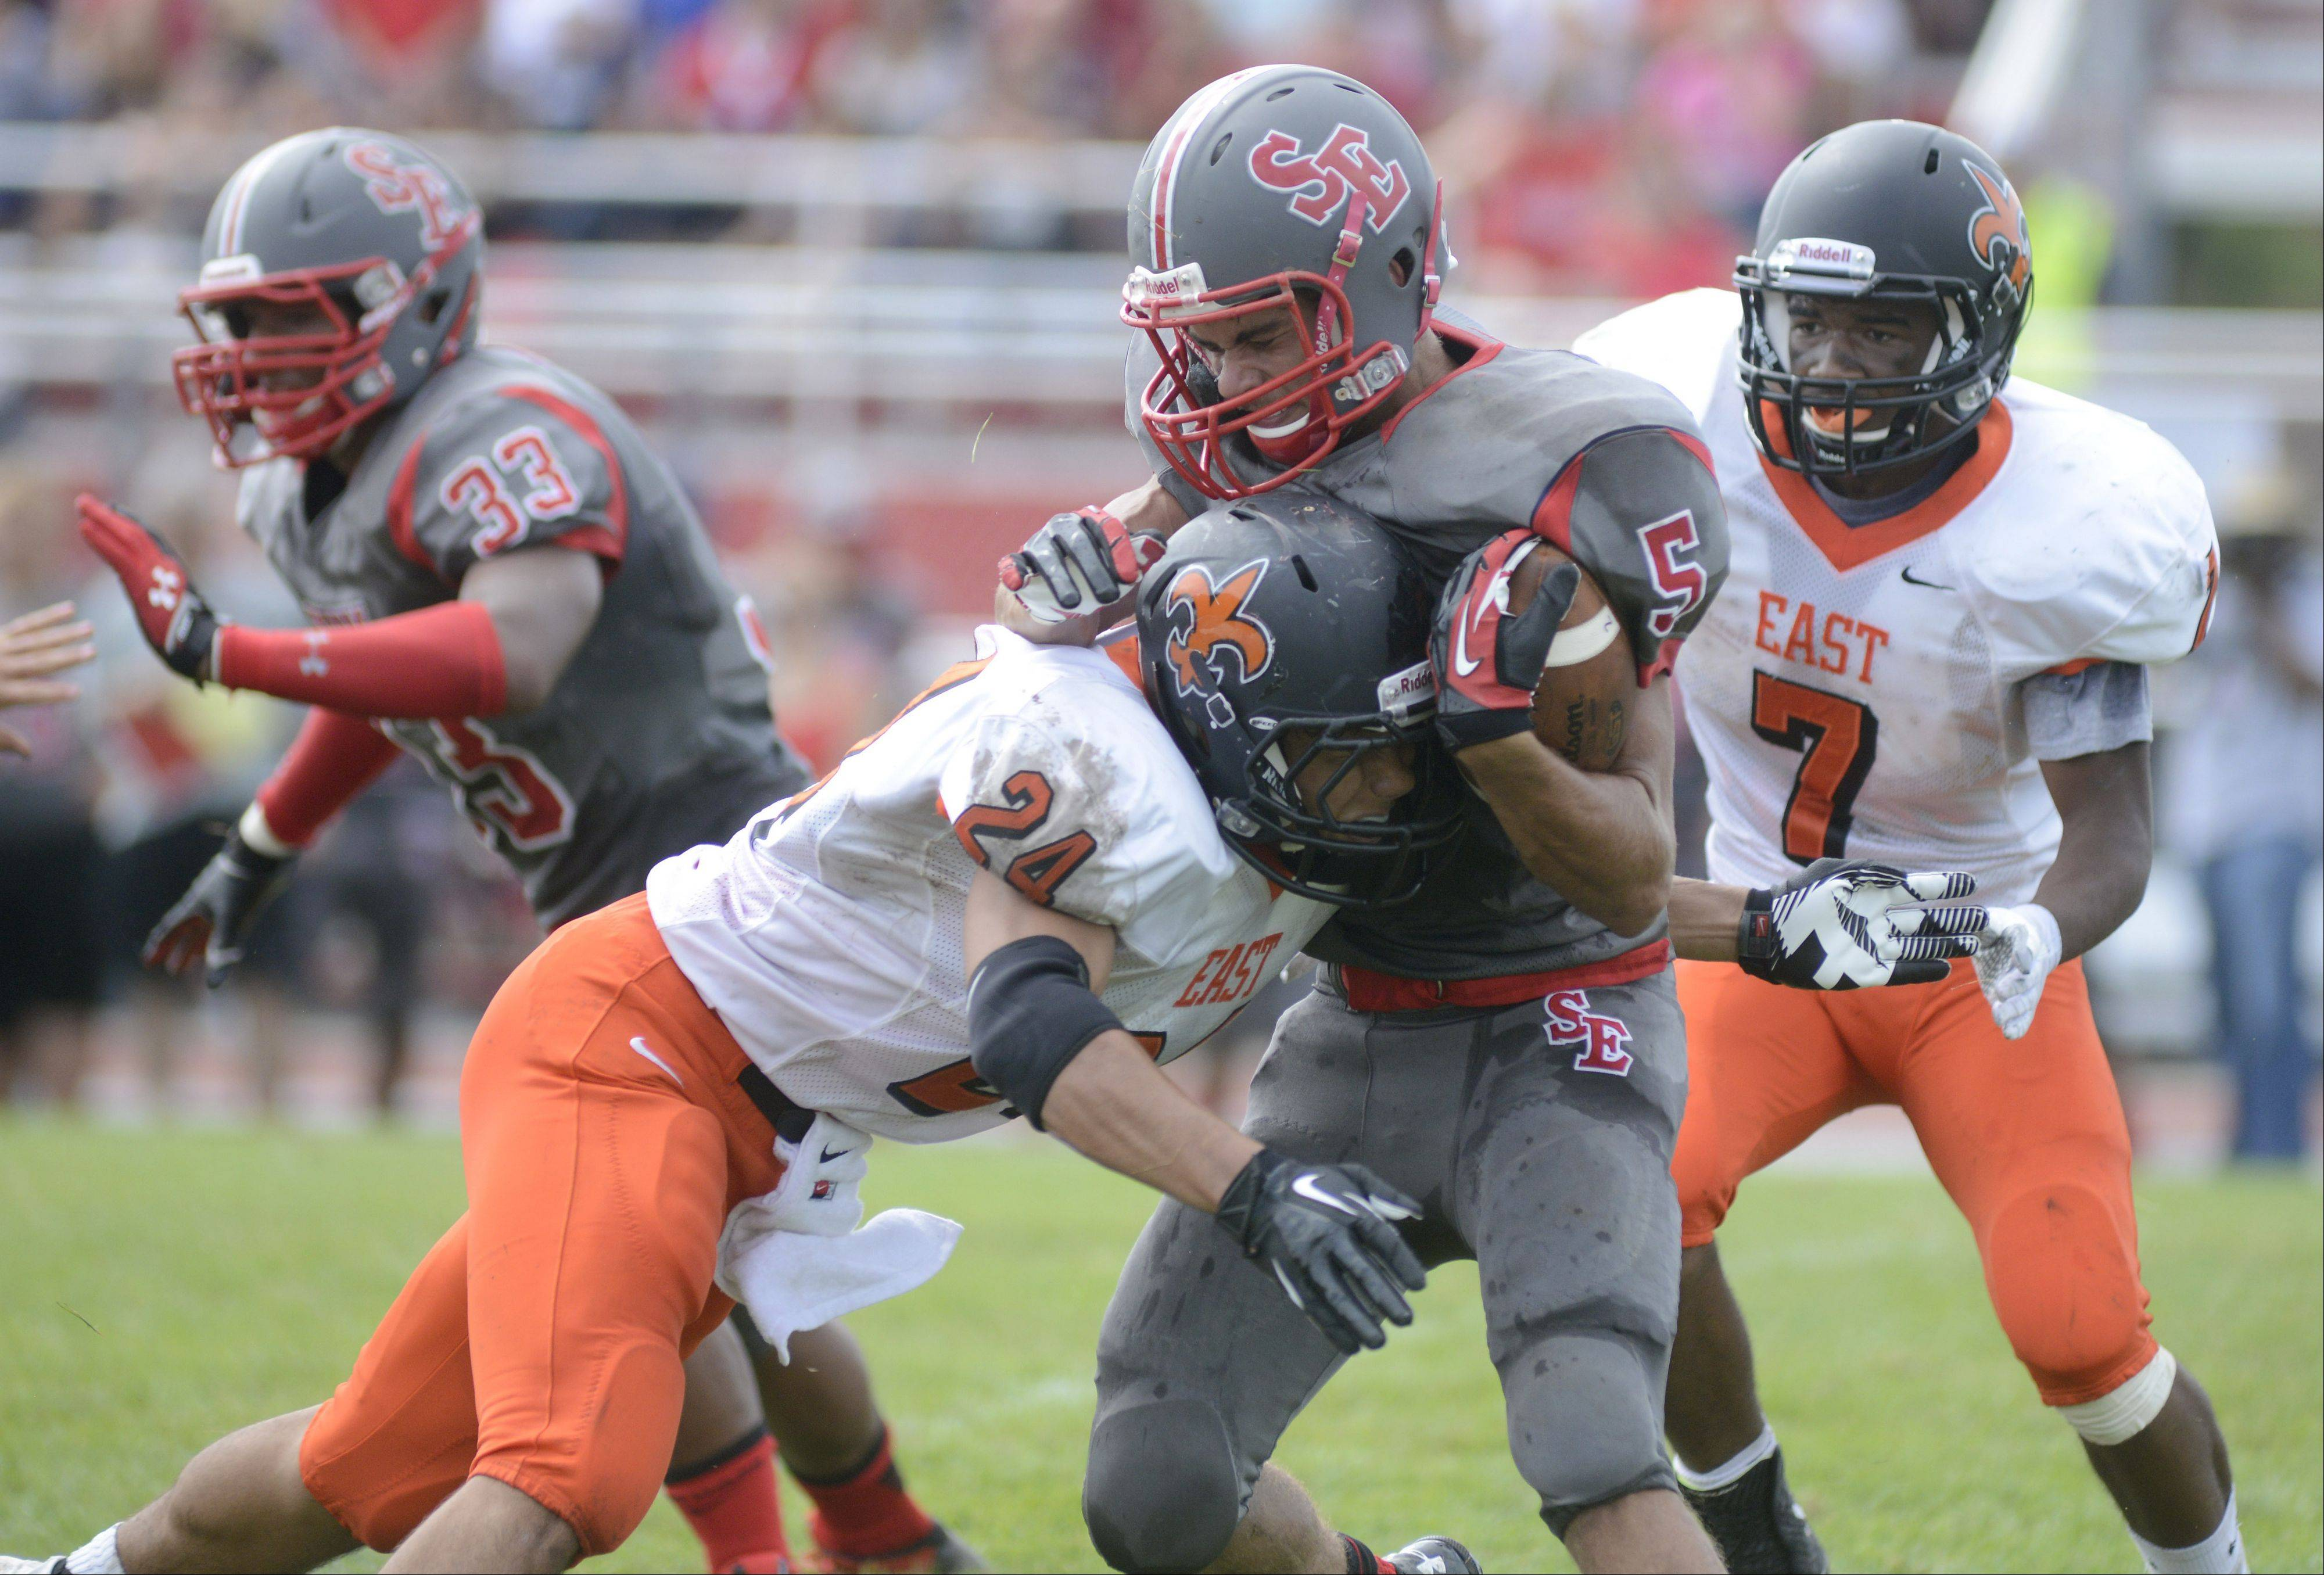 Images: South Elgin vs. St. Charles East football